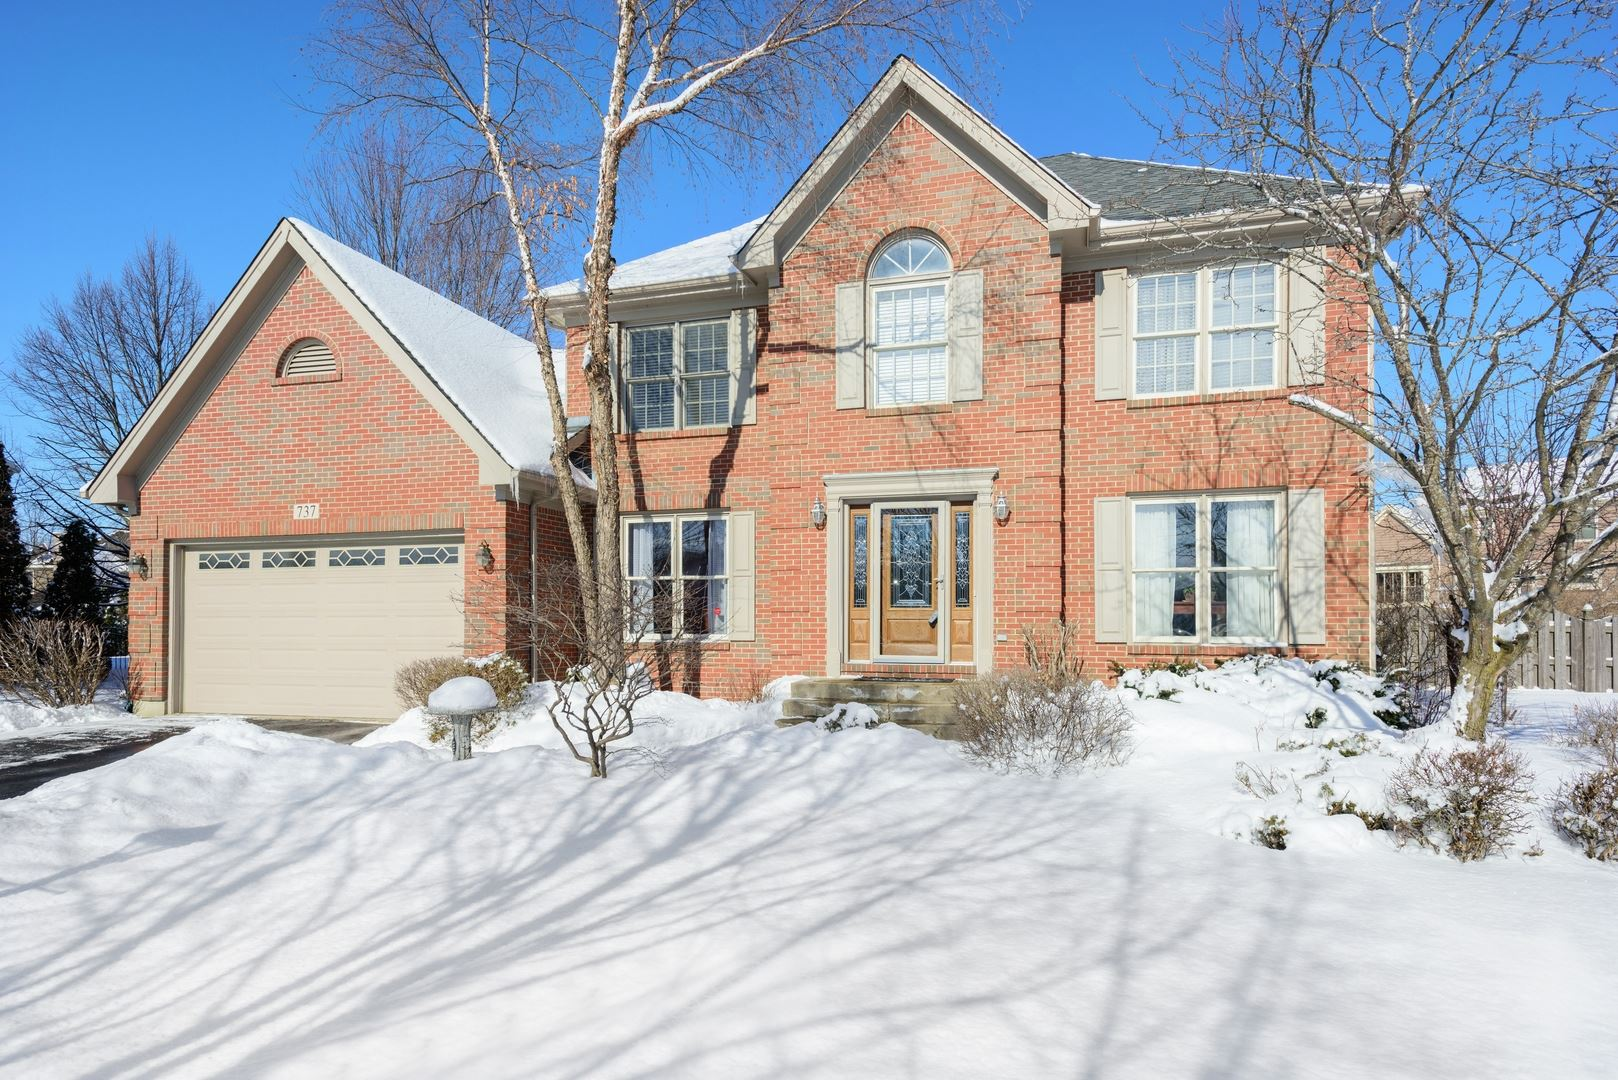 737 BUNTING Court, West Chicago, IL 60185 - #: 10997843